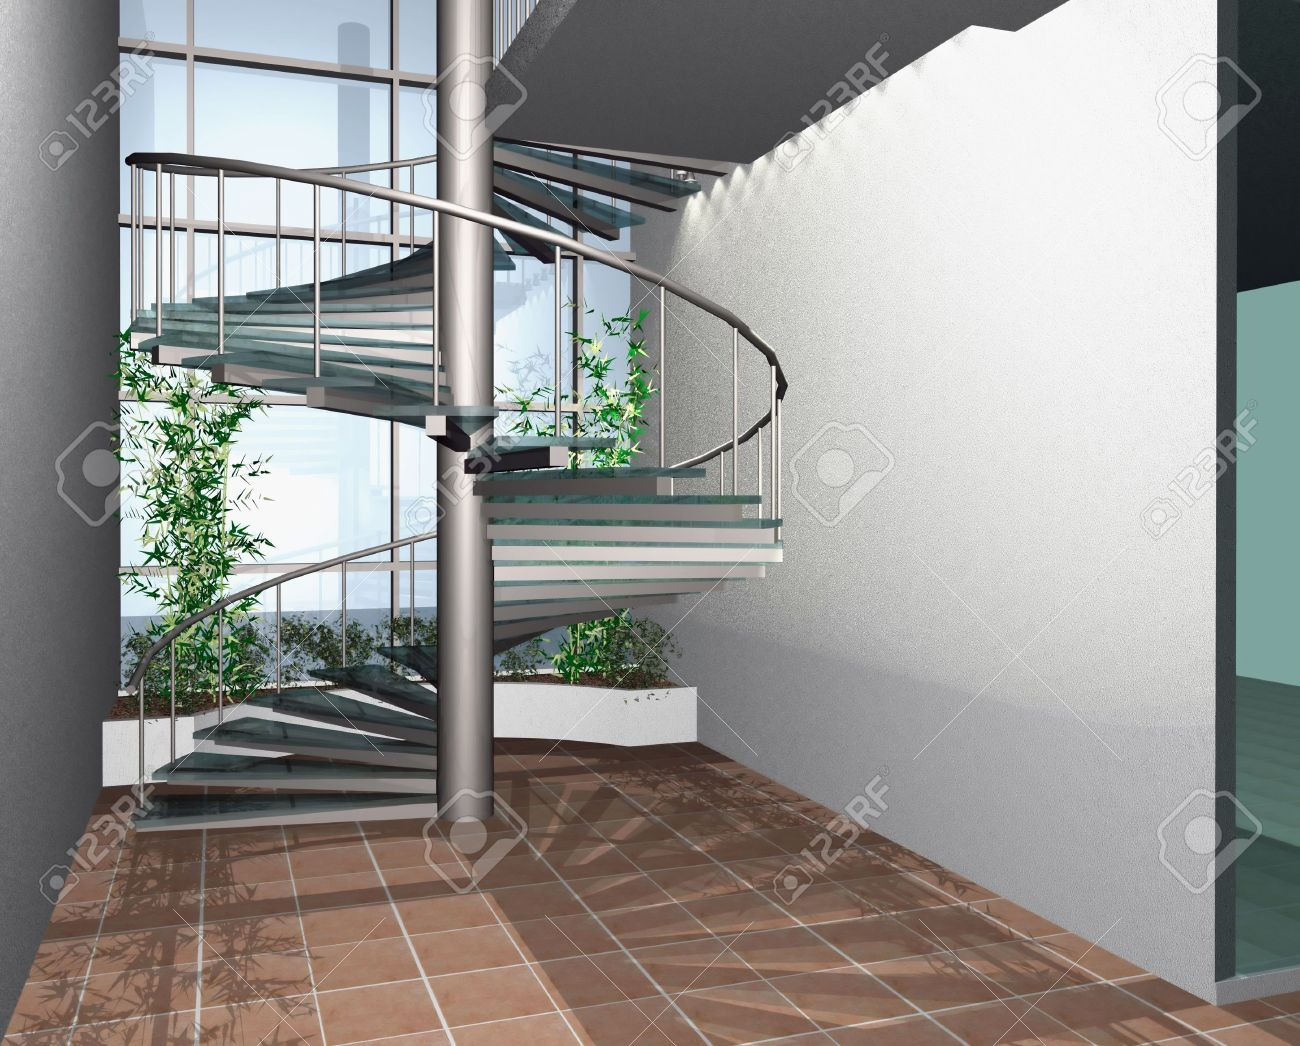 3D Render Of Modern House Building Interior With Circle Stairs Stock Photo